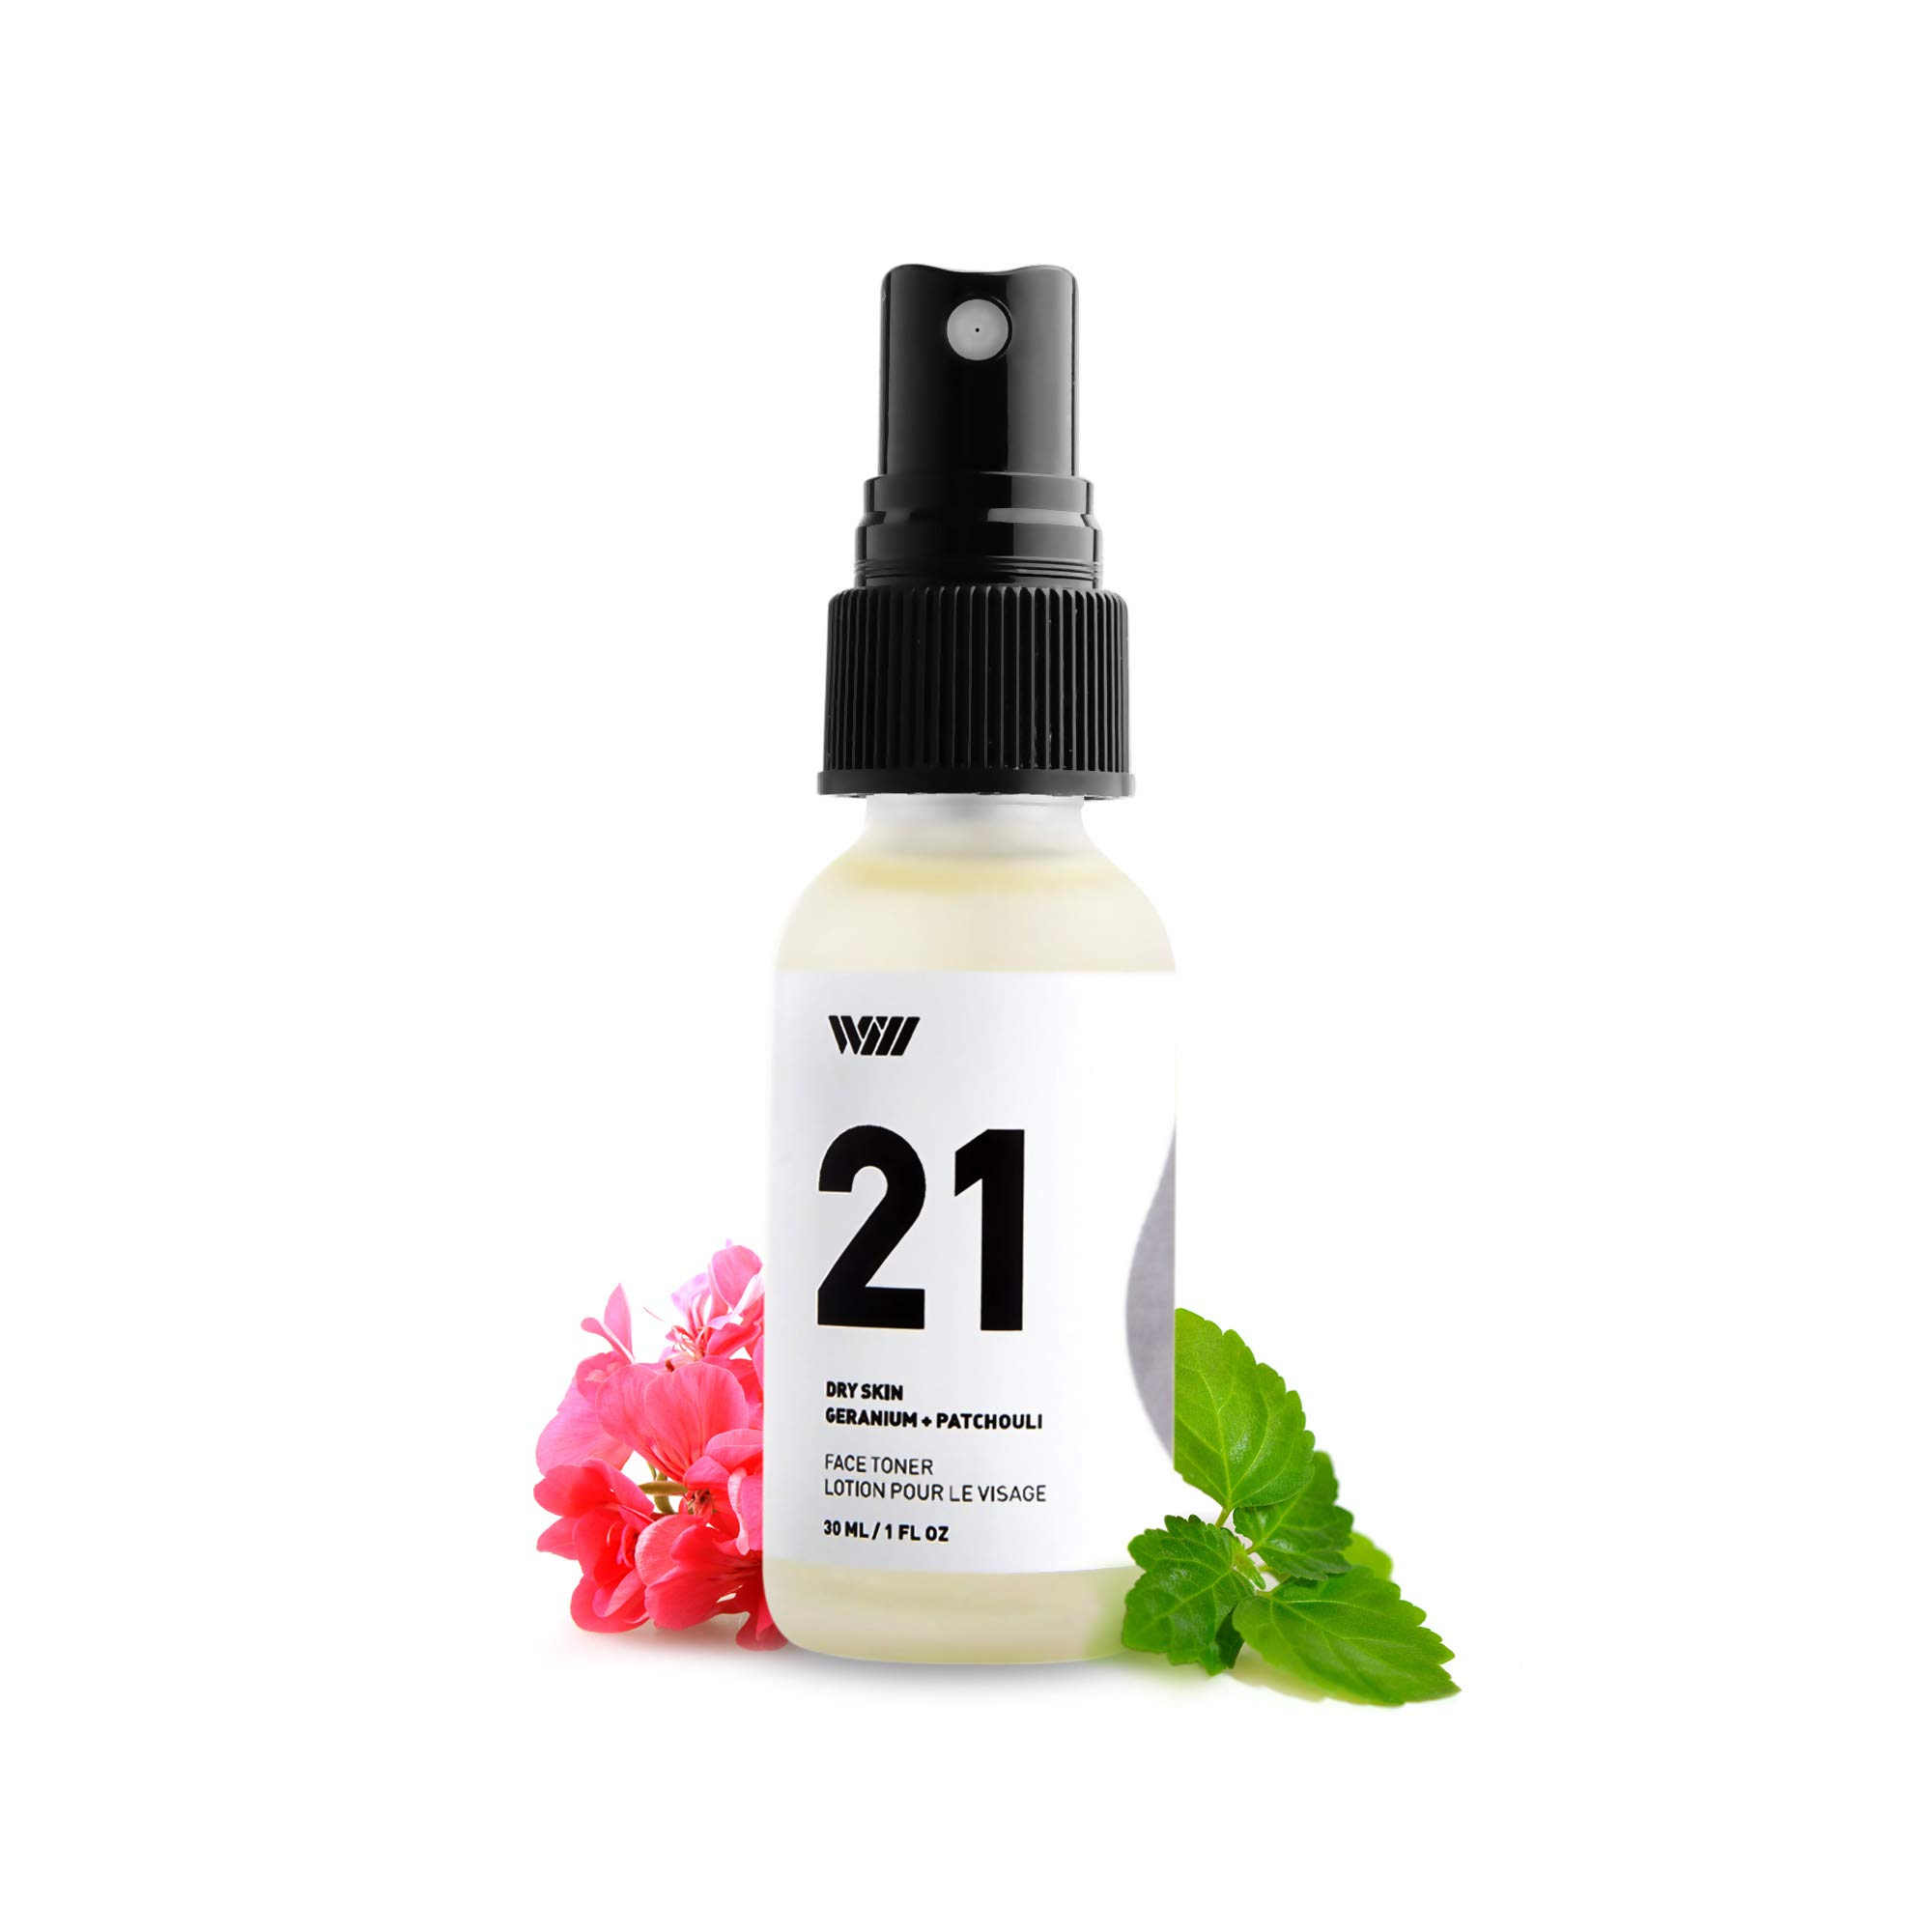 21 Dry Skin Face Toner, Natural Face Toner for Acne and Hydration, Vitamin C Pore Reducing Toner, Paraben Free (Geranium and Patchouli) - Way of Wil